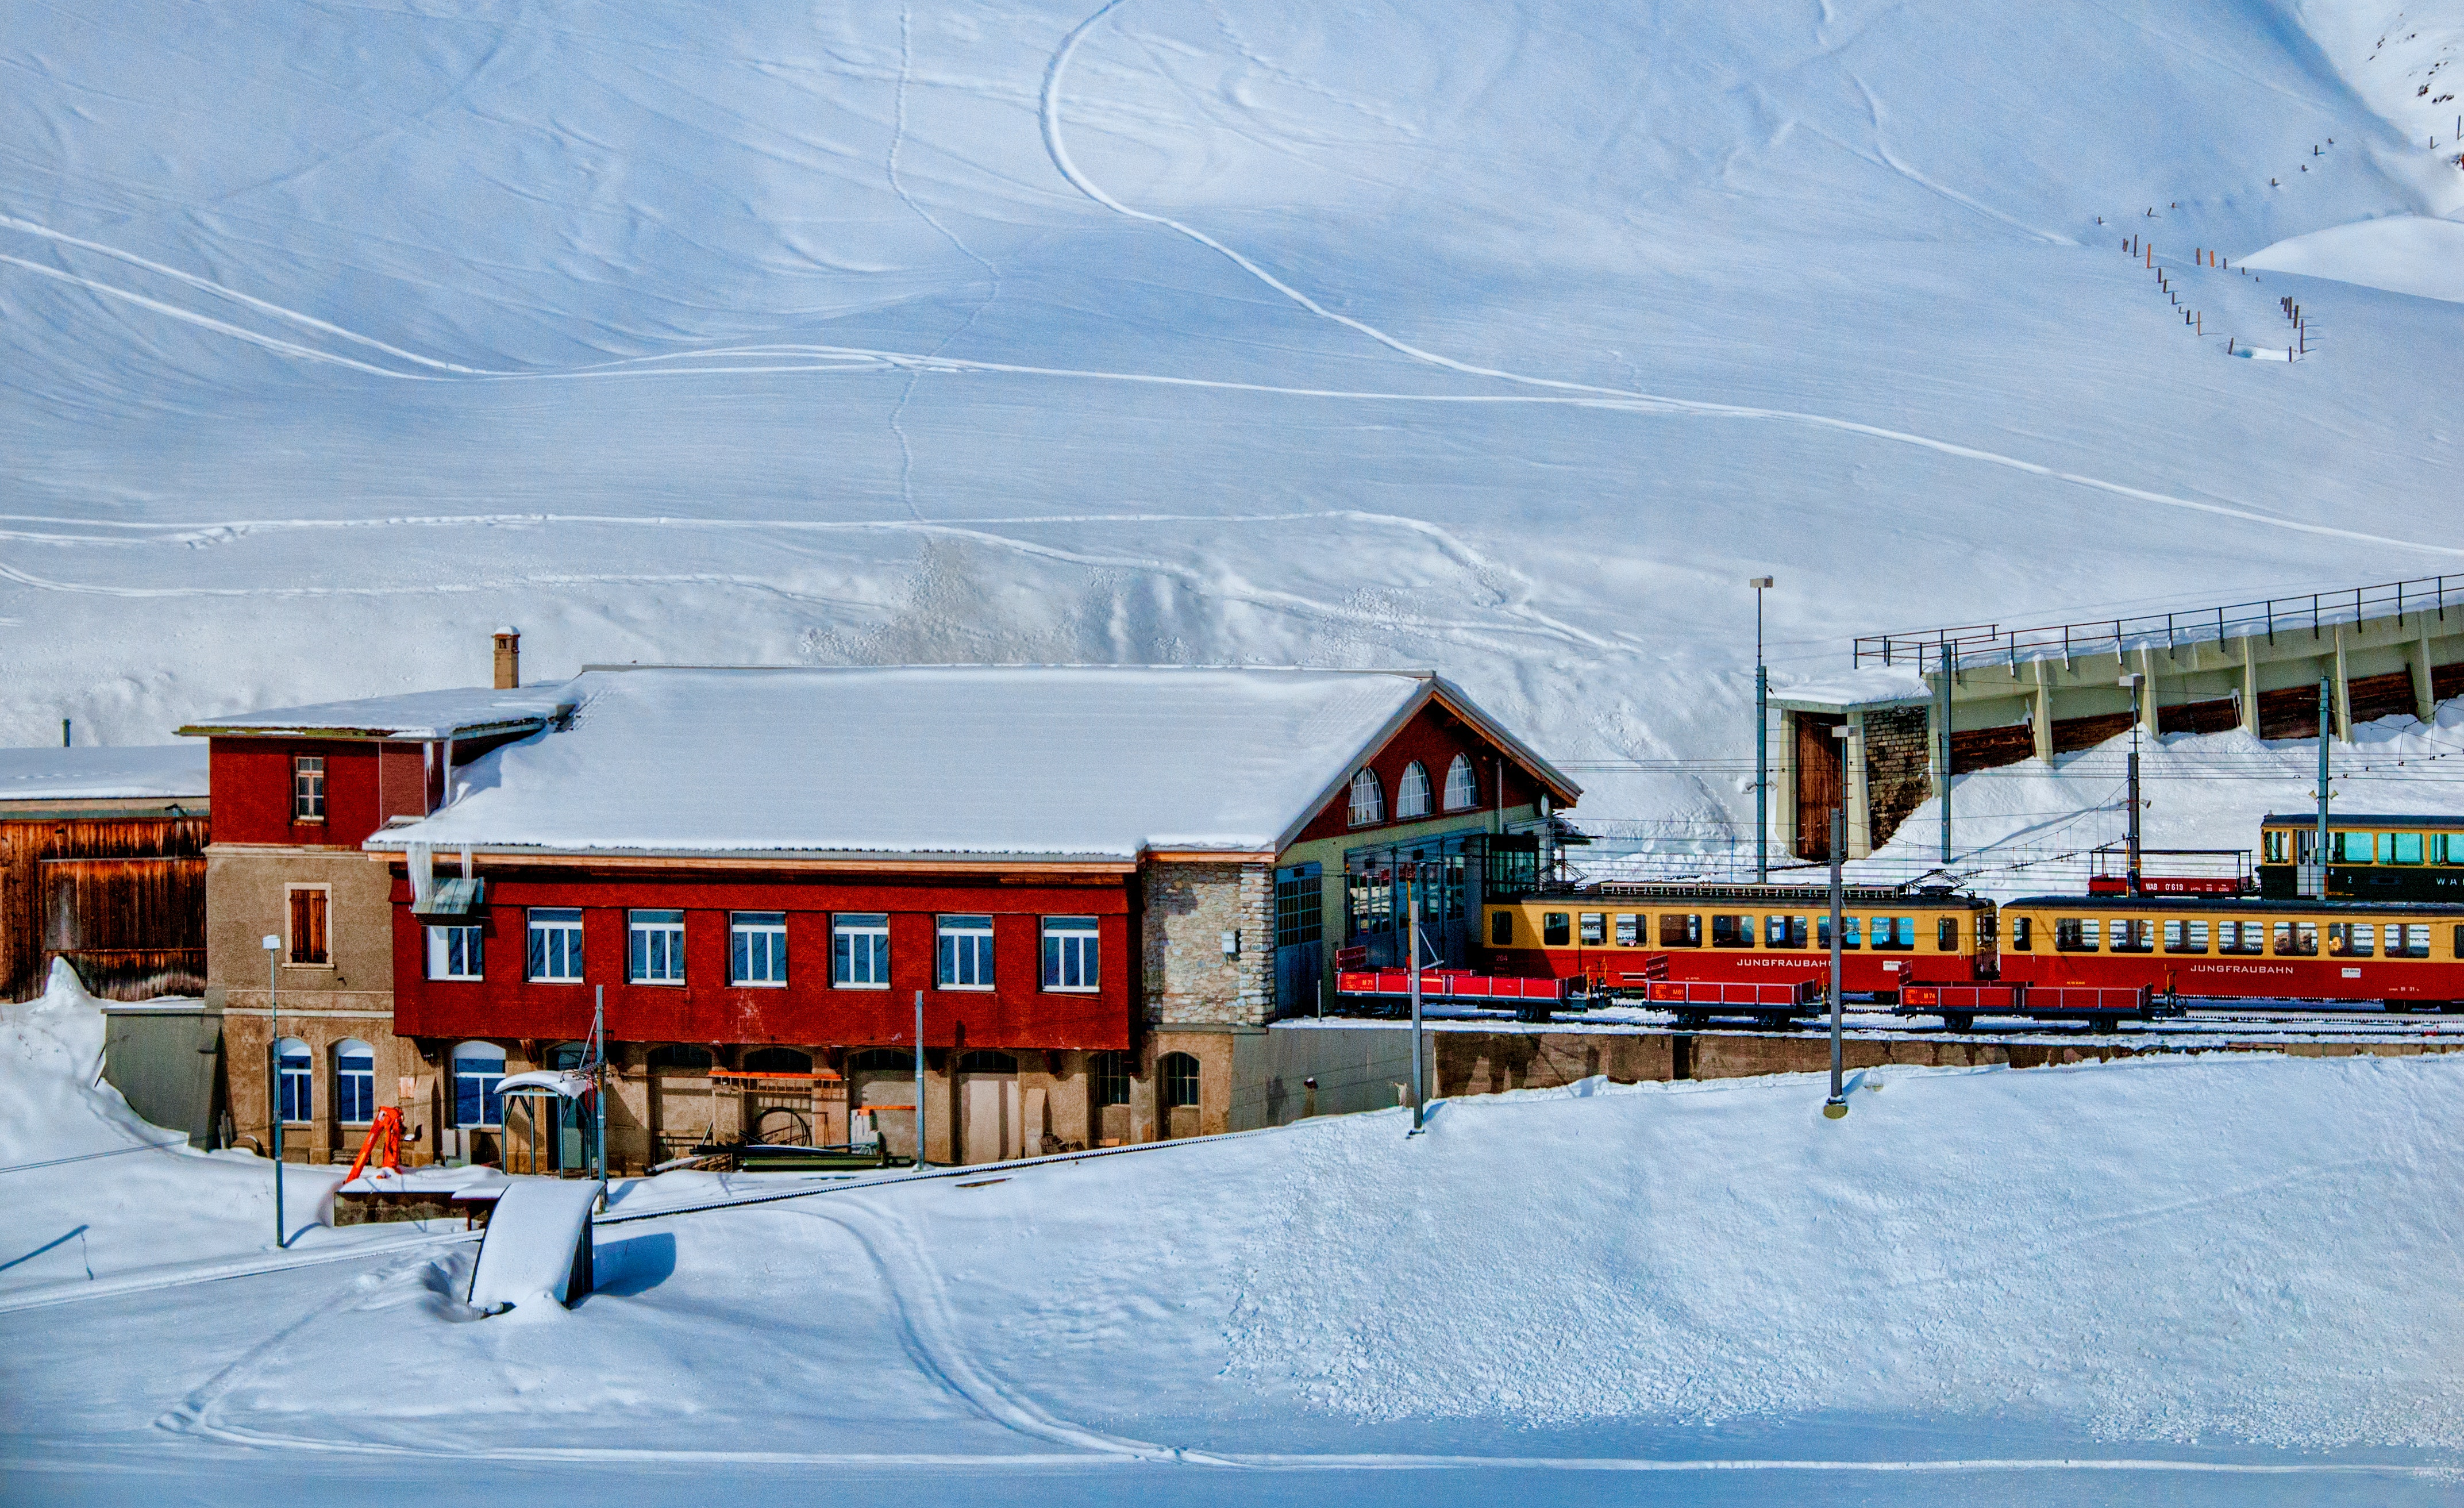 Yellow and Red Train Beside Snowy Mountain, Scenic, Winter, Weather, Vacation, HQ Photo